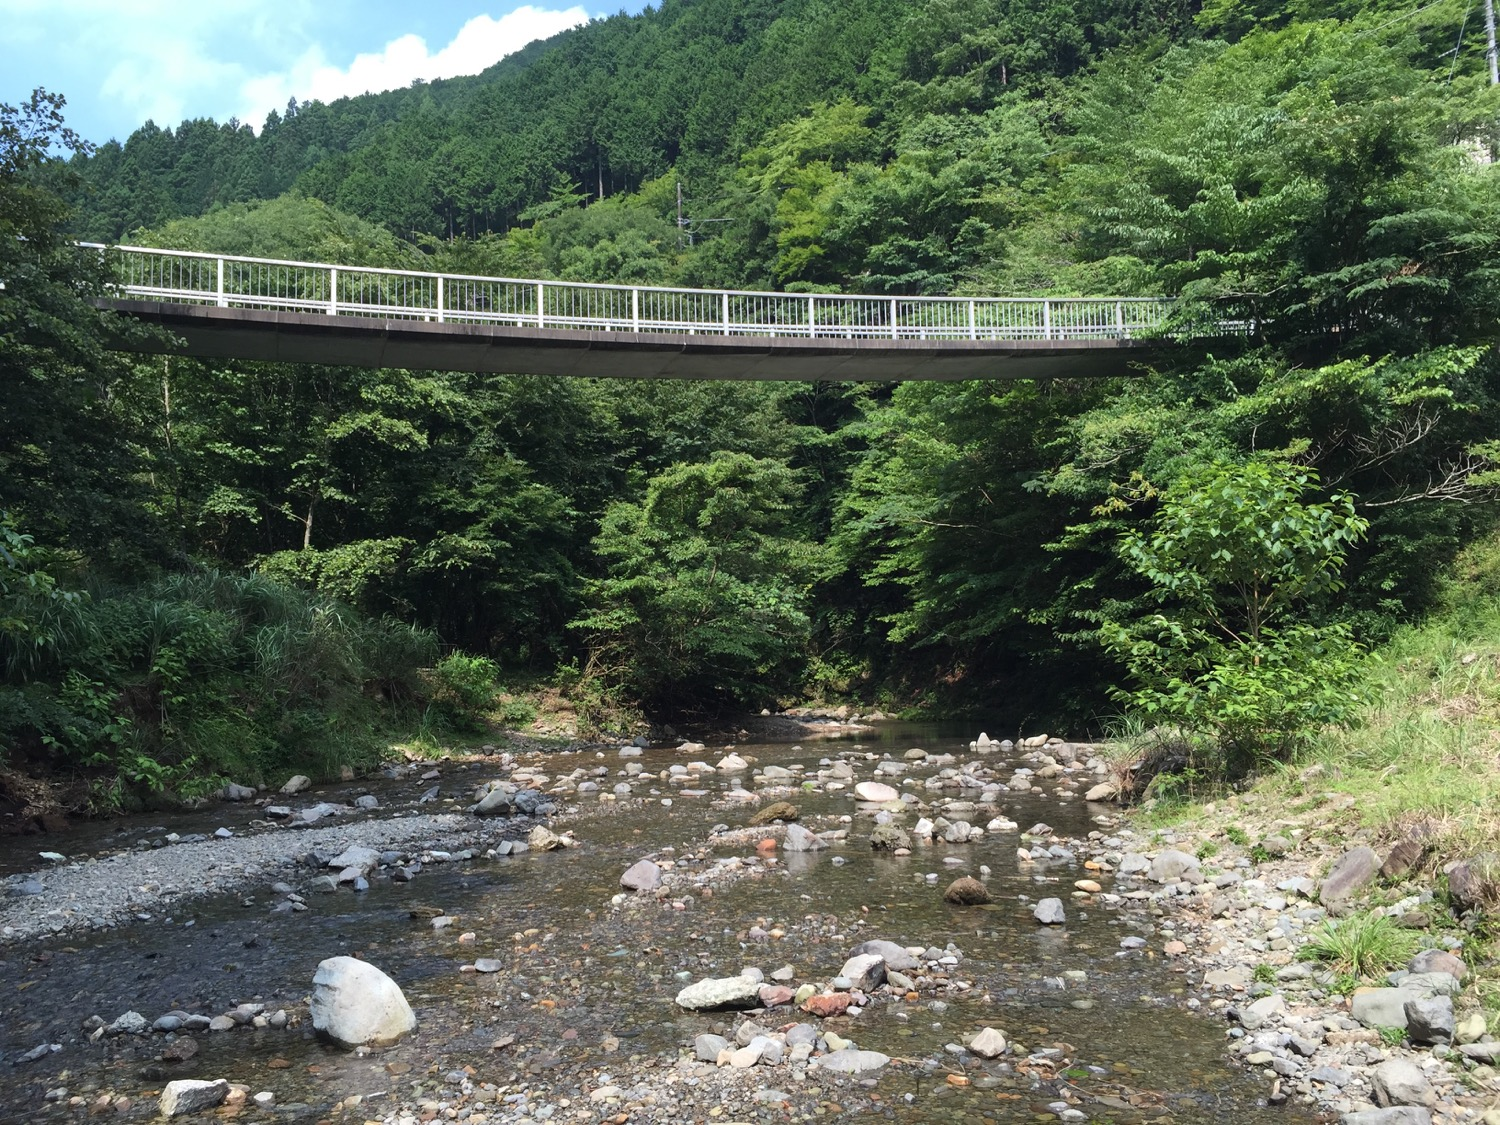 A footbridge over the lower river